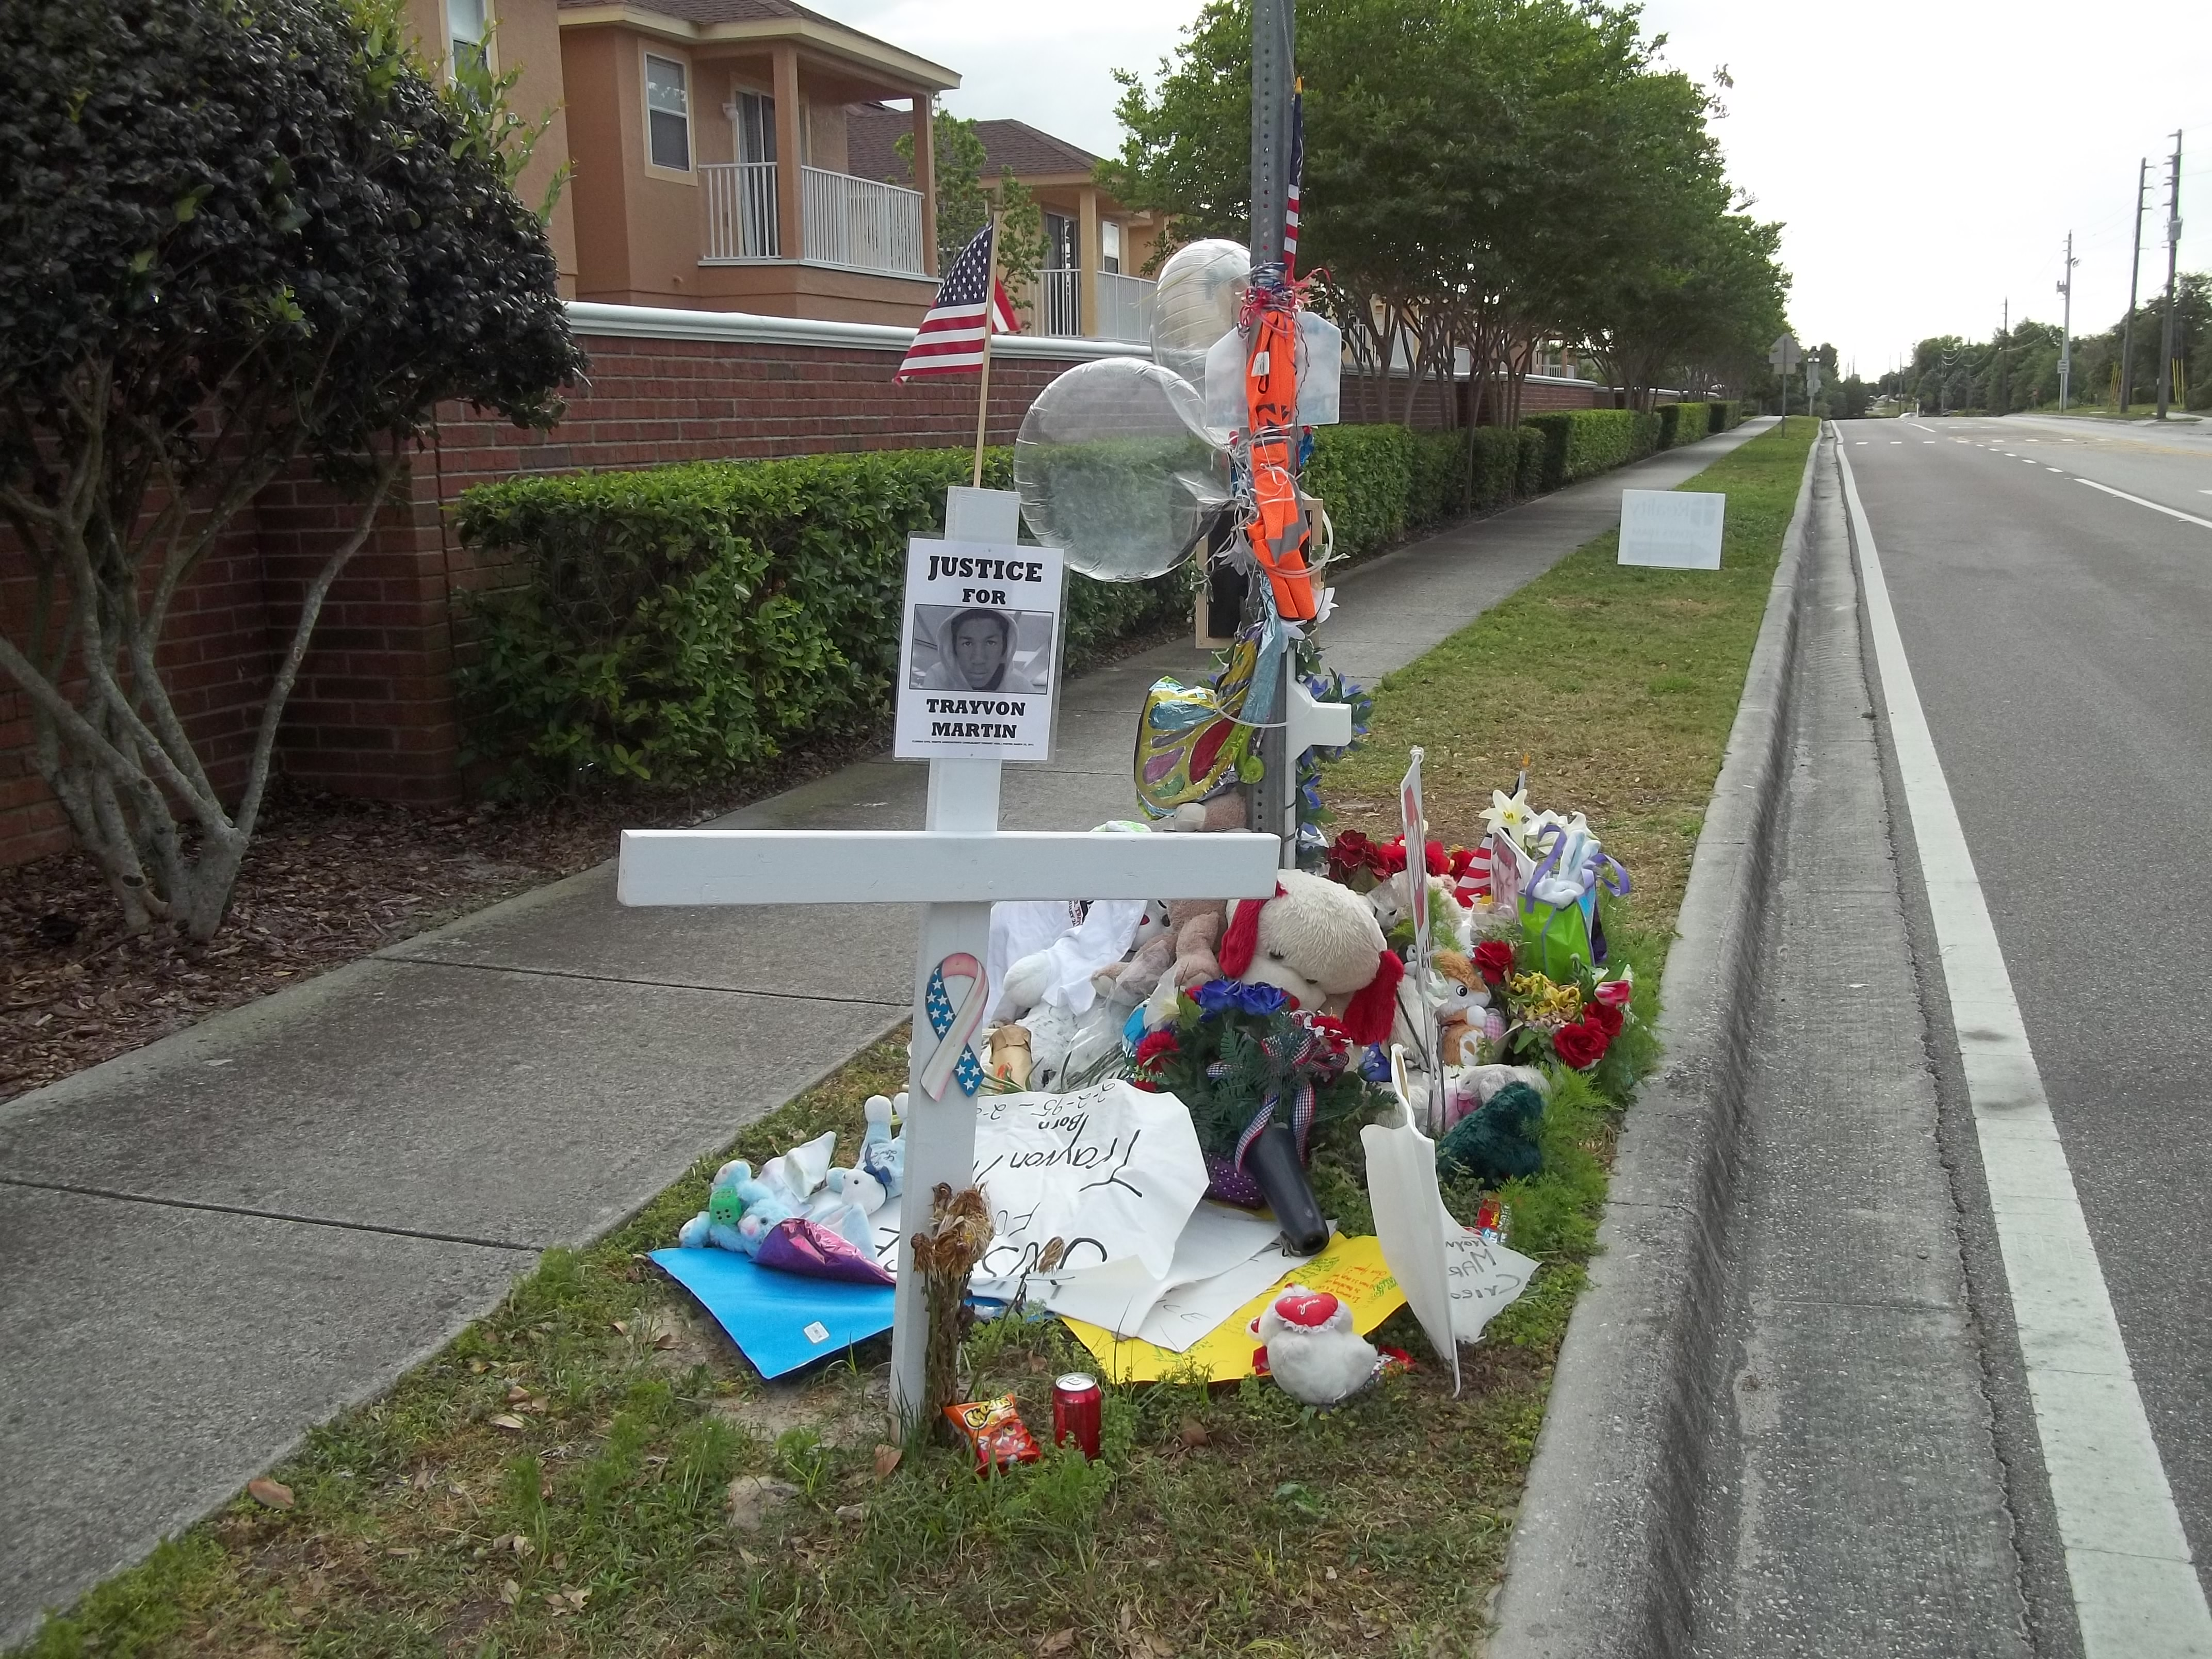 File:Trayvon Martin Memorial.jpeg - Wikipedia